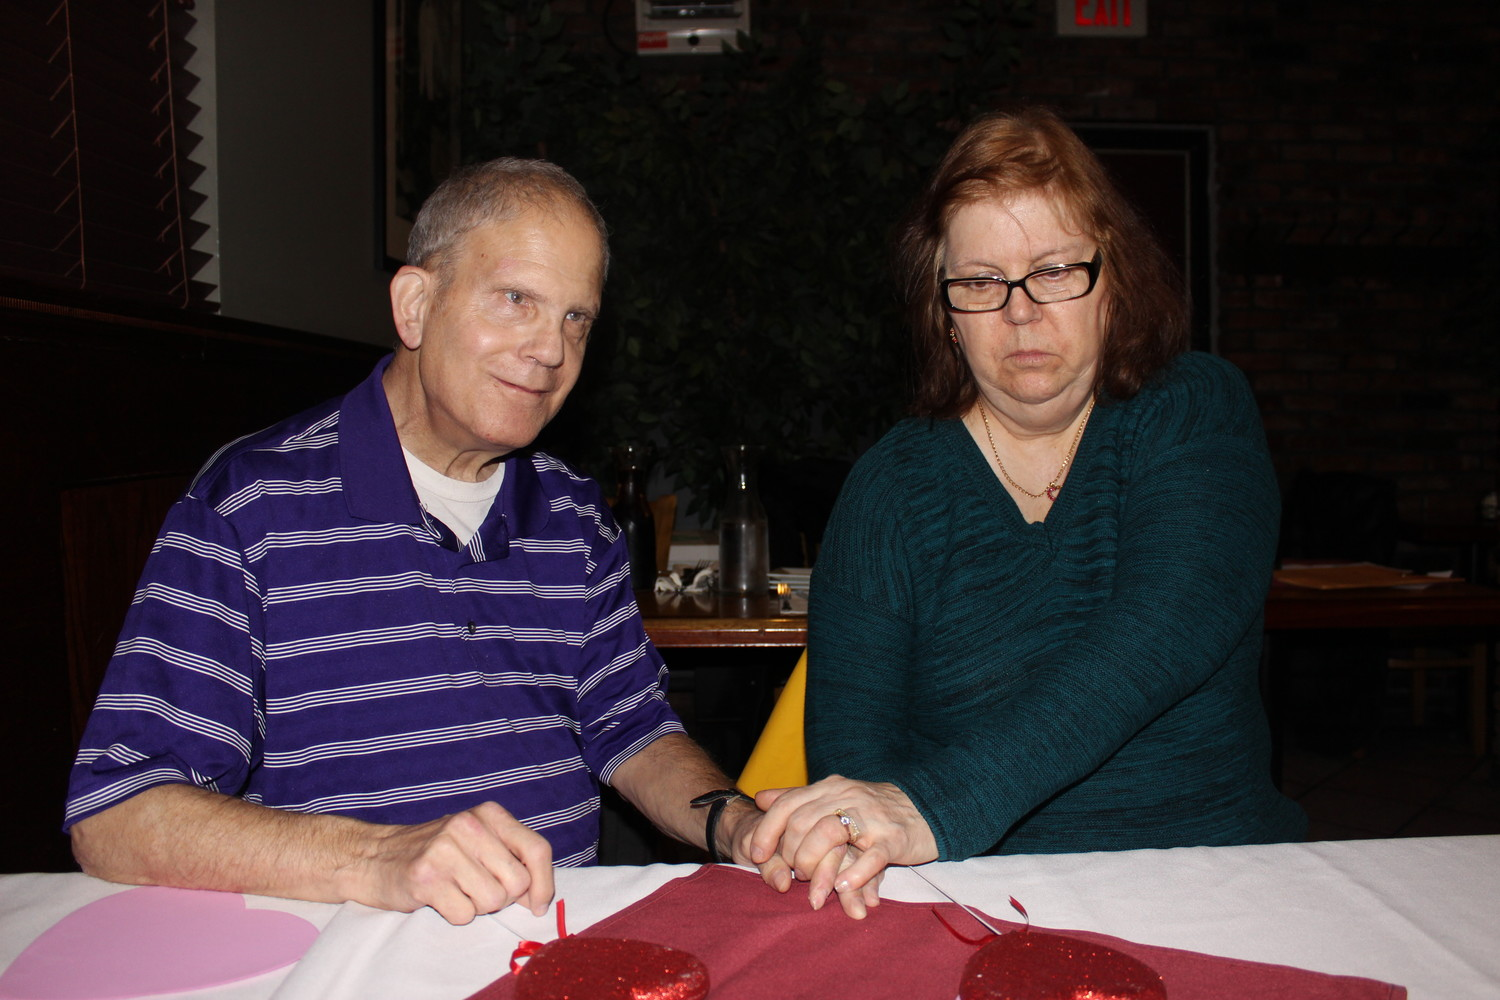 Jeffrey Witt, 70, and his wife Maryann, 68, of Rockville Center, have been together for 22 years.